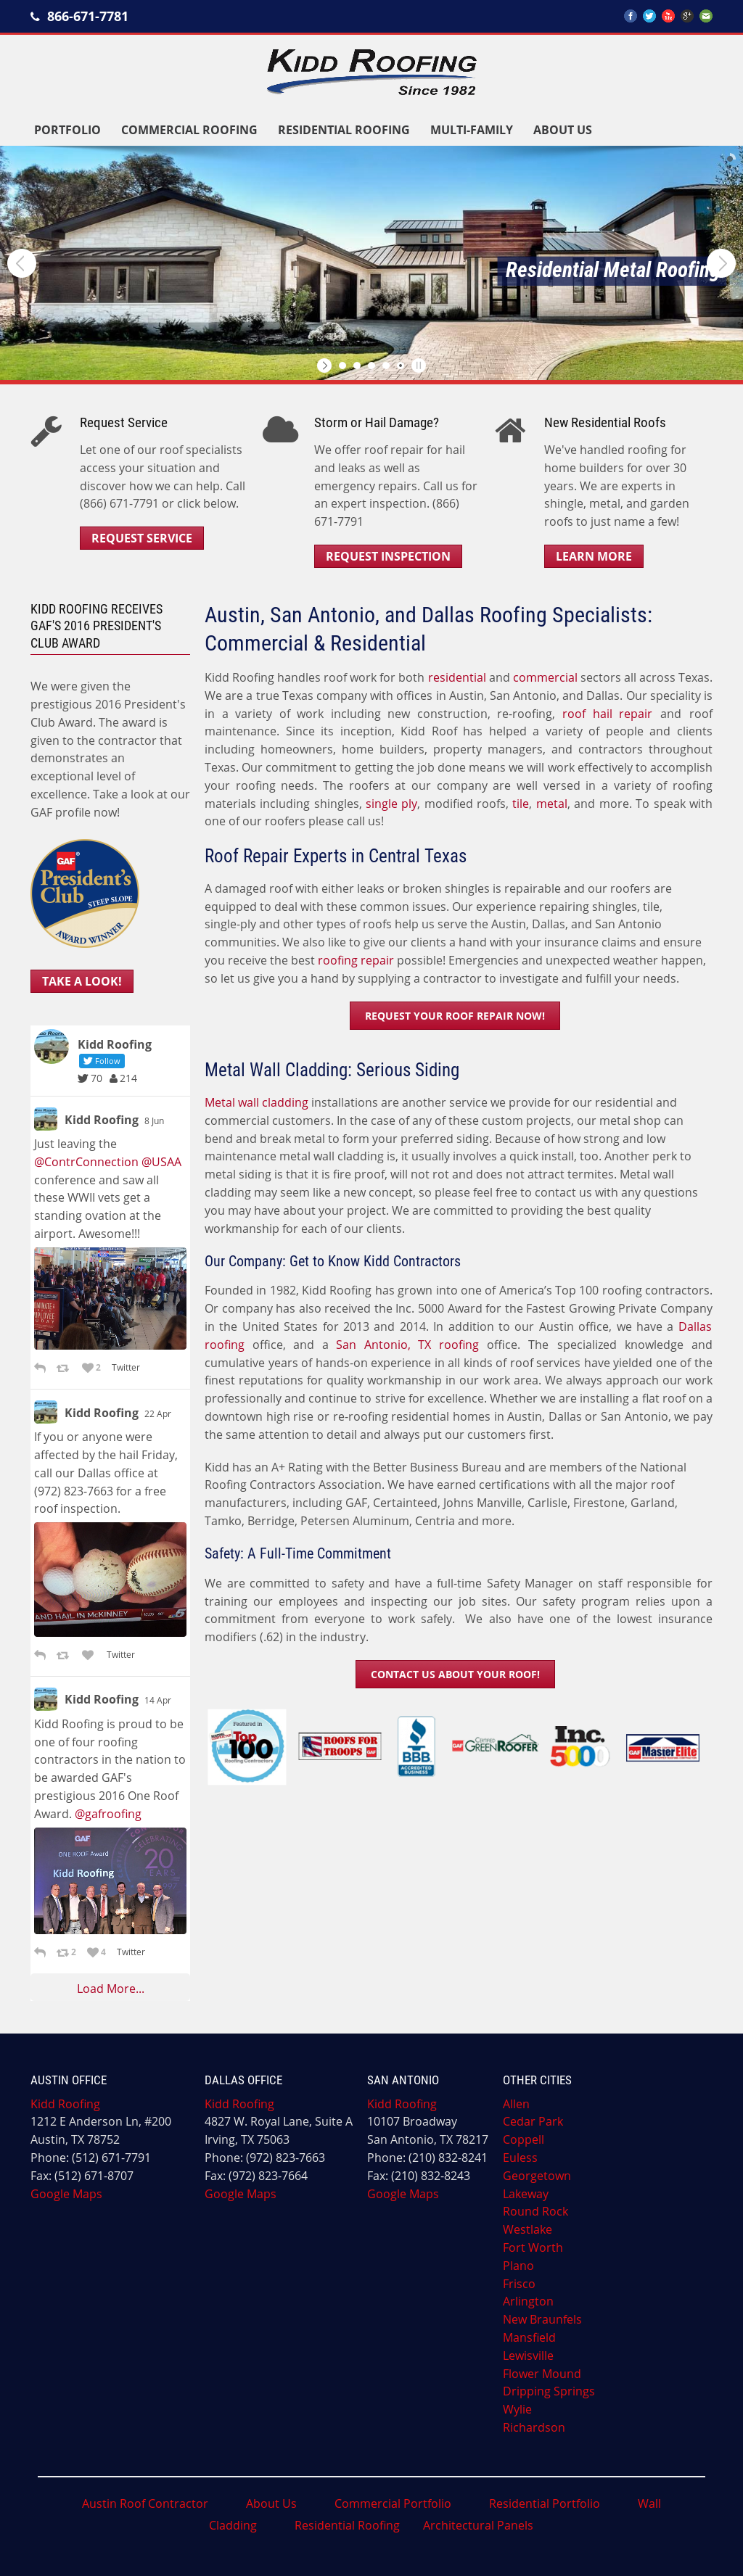 Kidd Roofing Website History